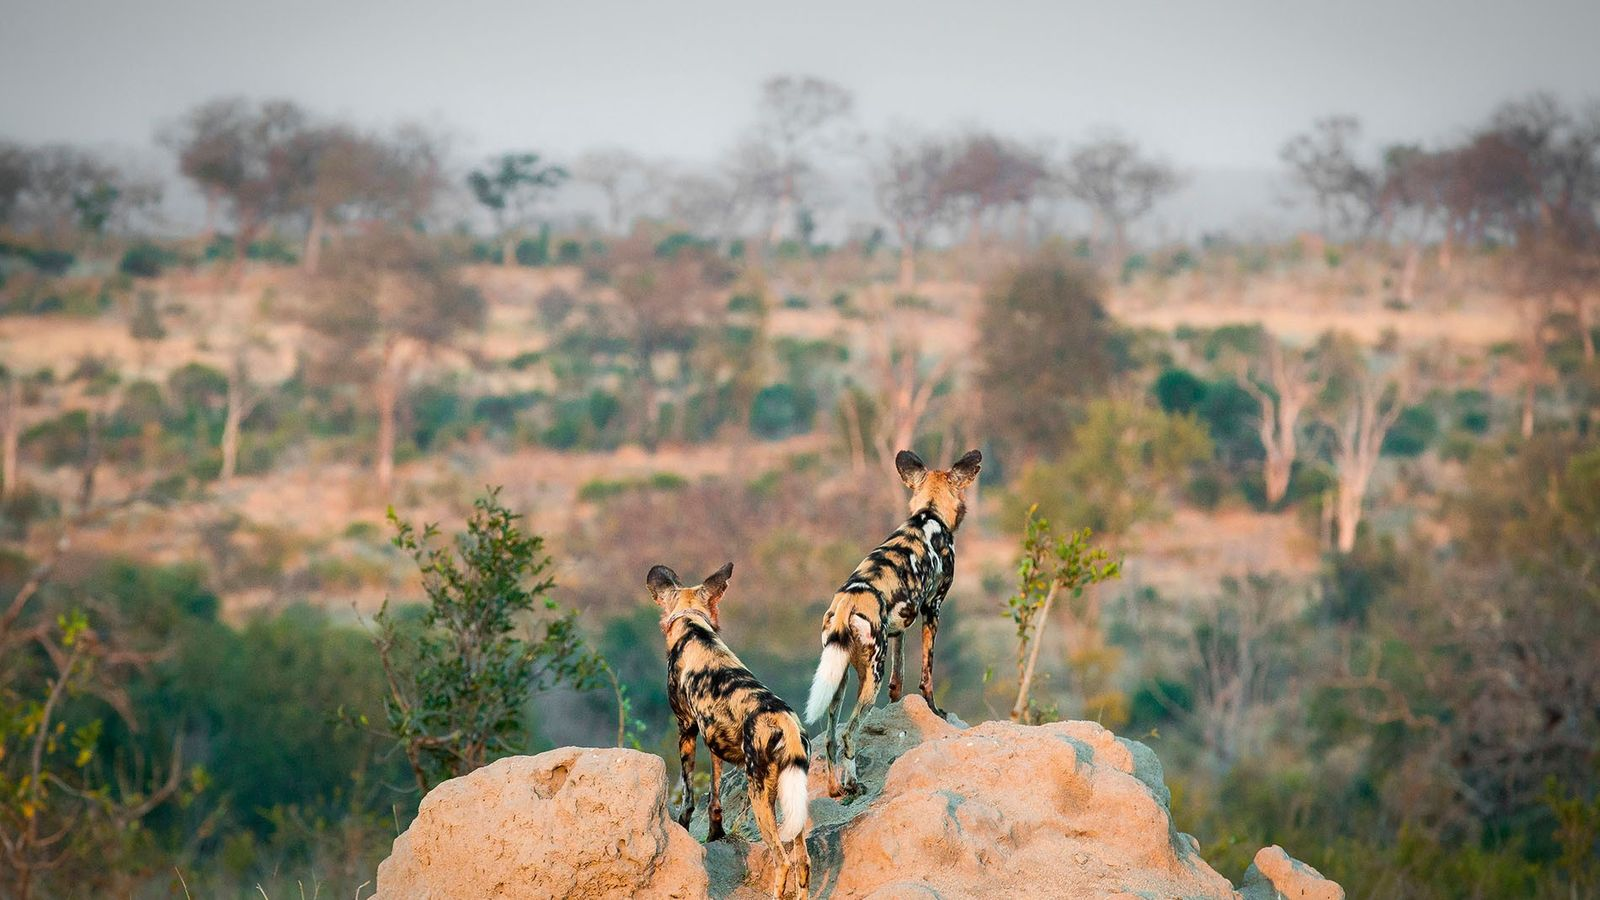 Wild dogs standing on a termite mound.